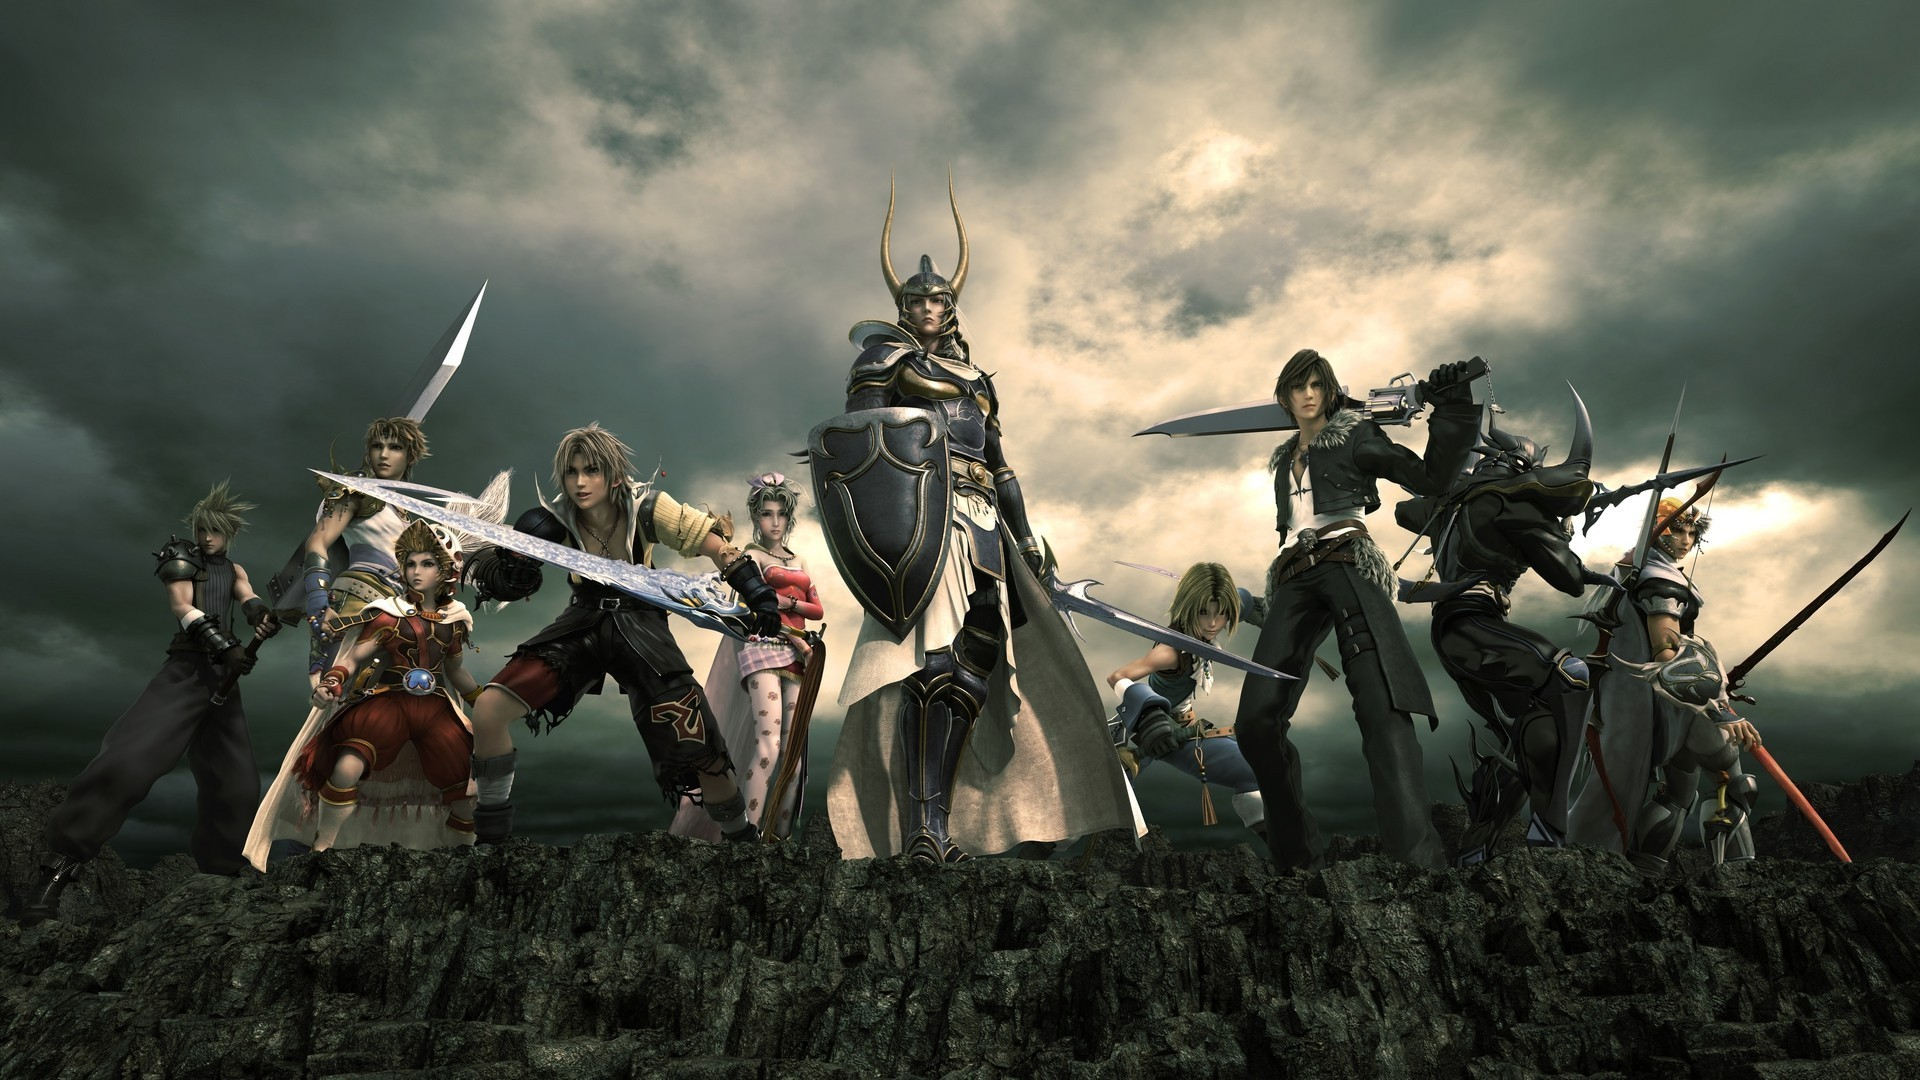 All Heroes on Final Fantasy XV Game Wallpaper